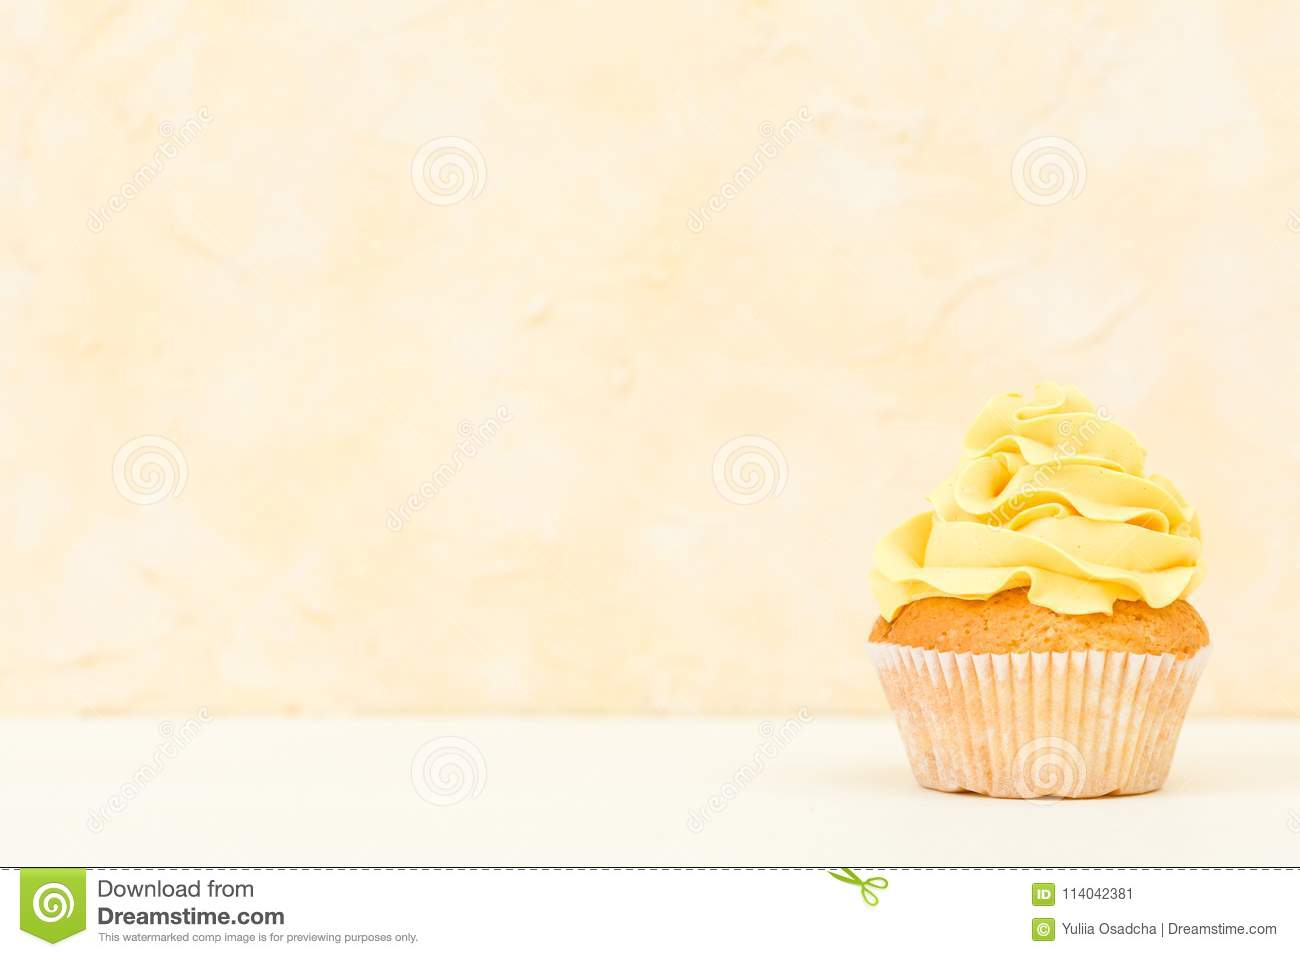 cupcake with yellow cream decoration on yellow background pastel